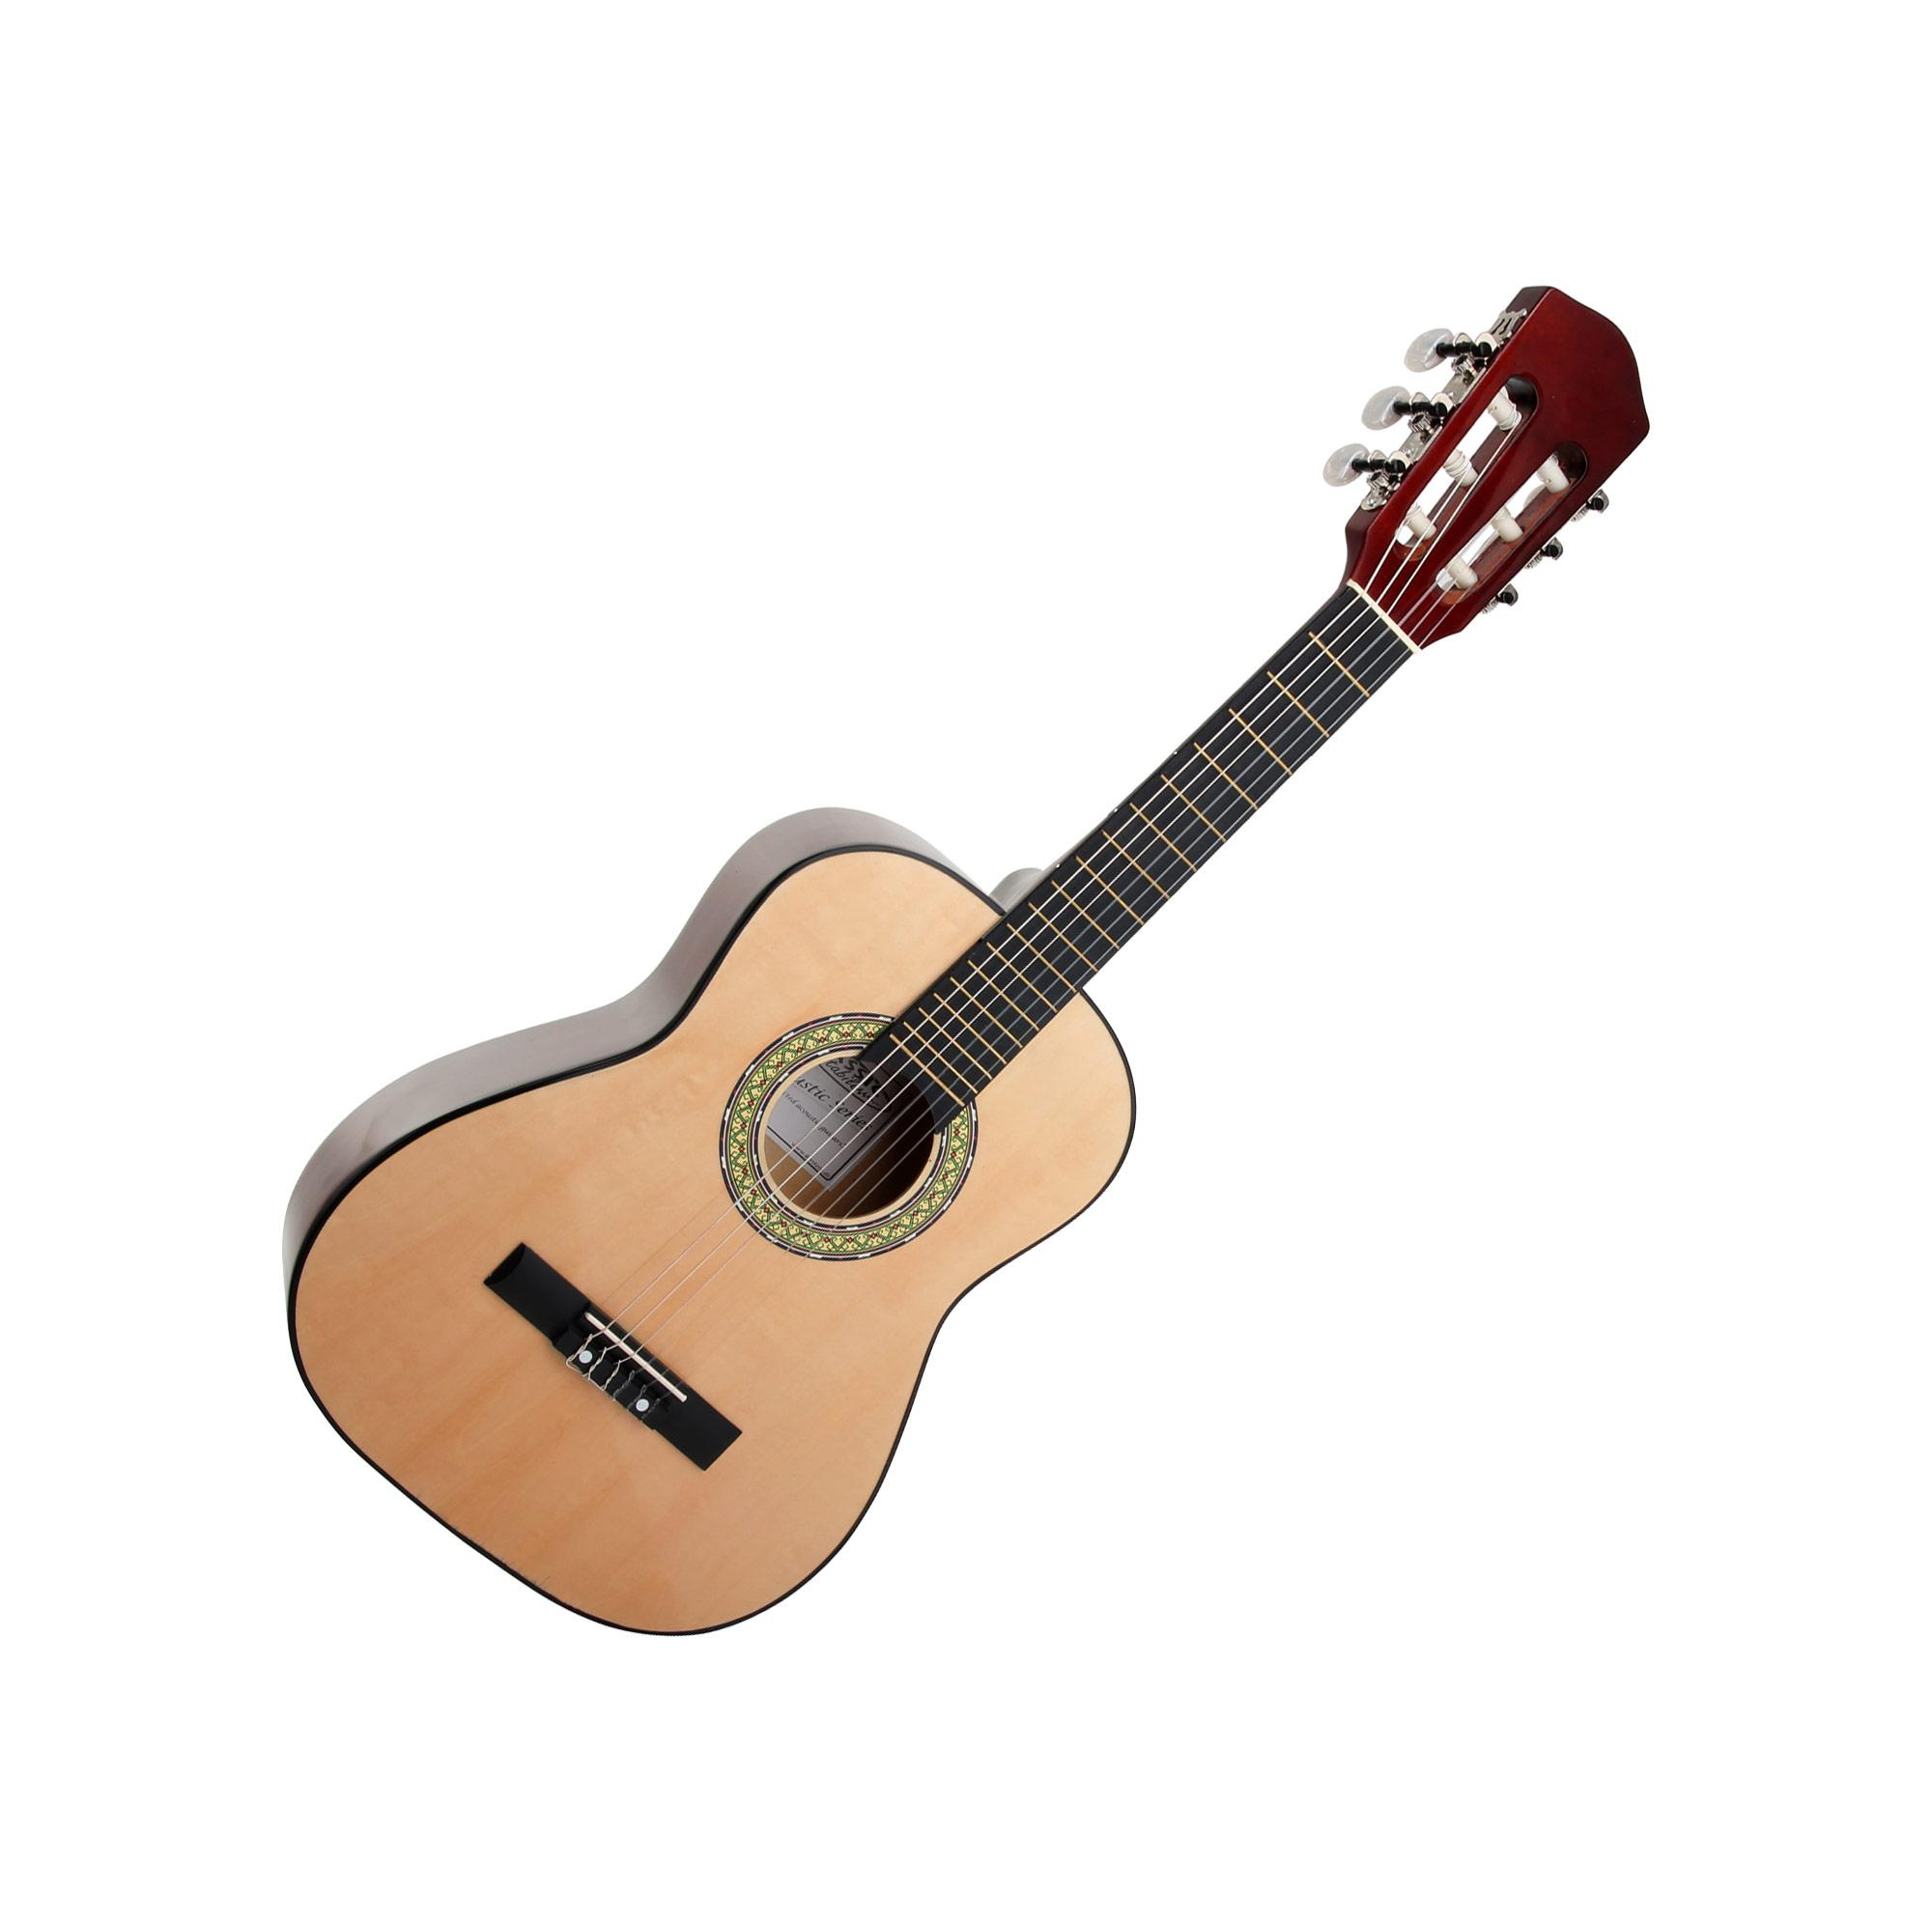 Classic Cantabile Acoustic Series AS 851 Konzertgitarre 1|4